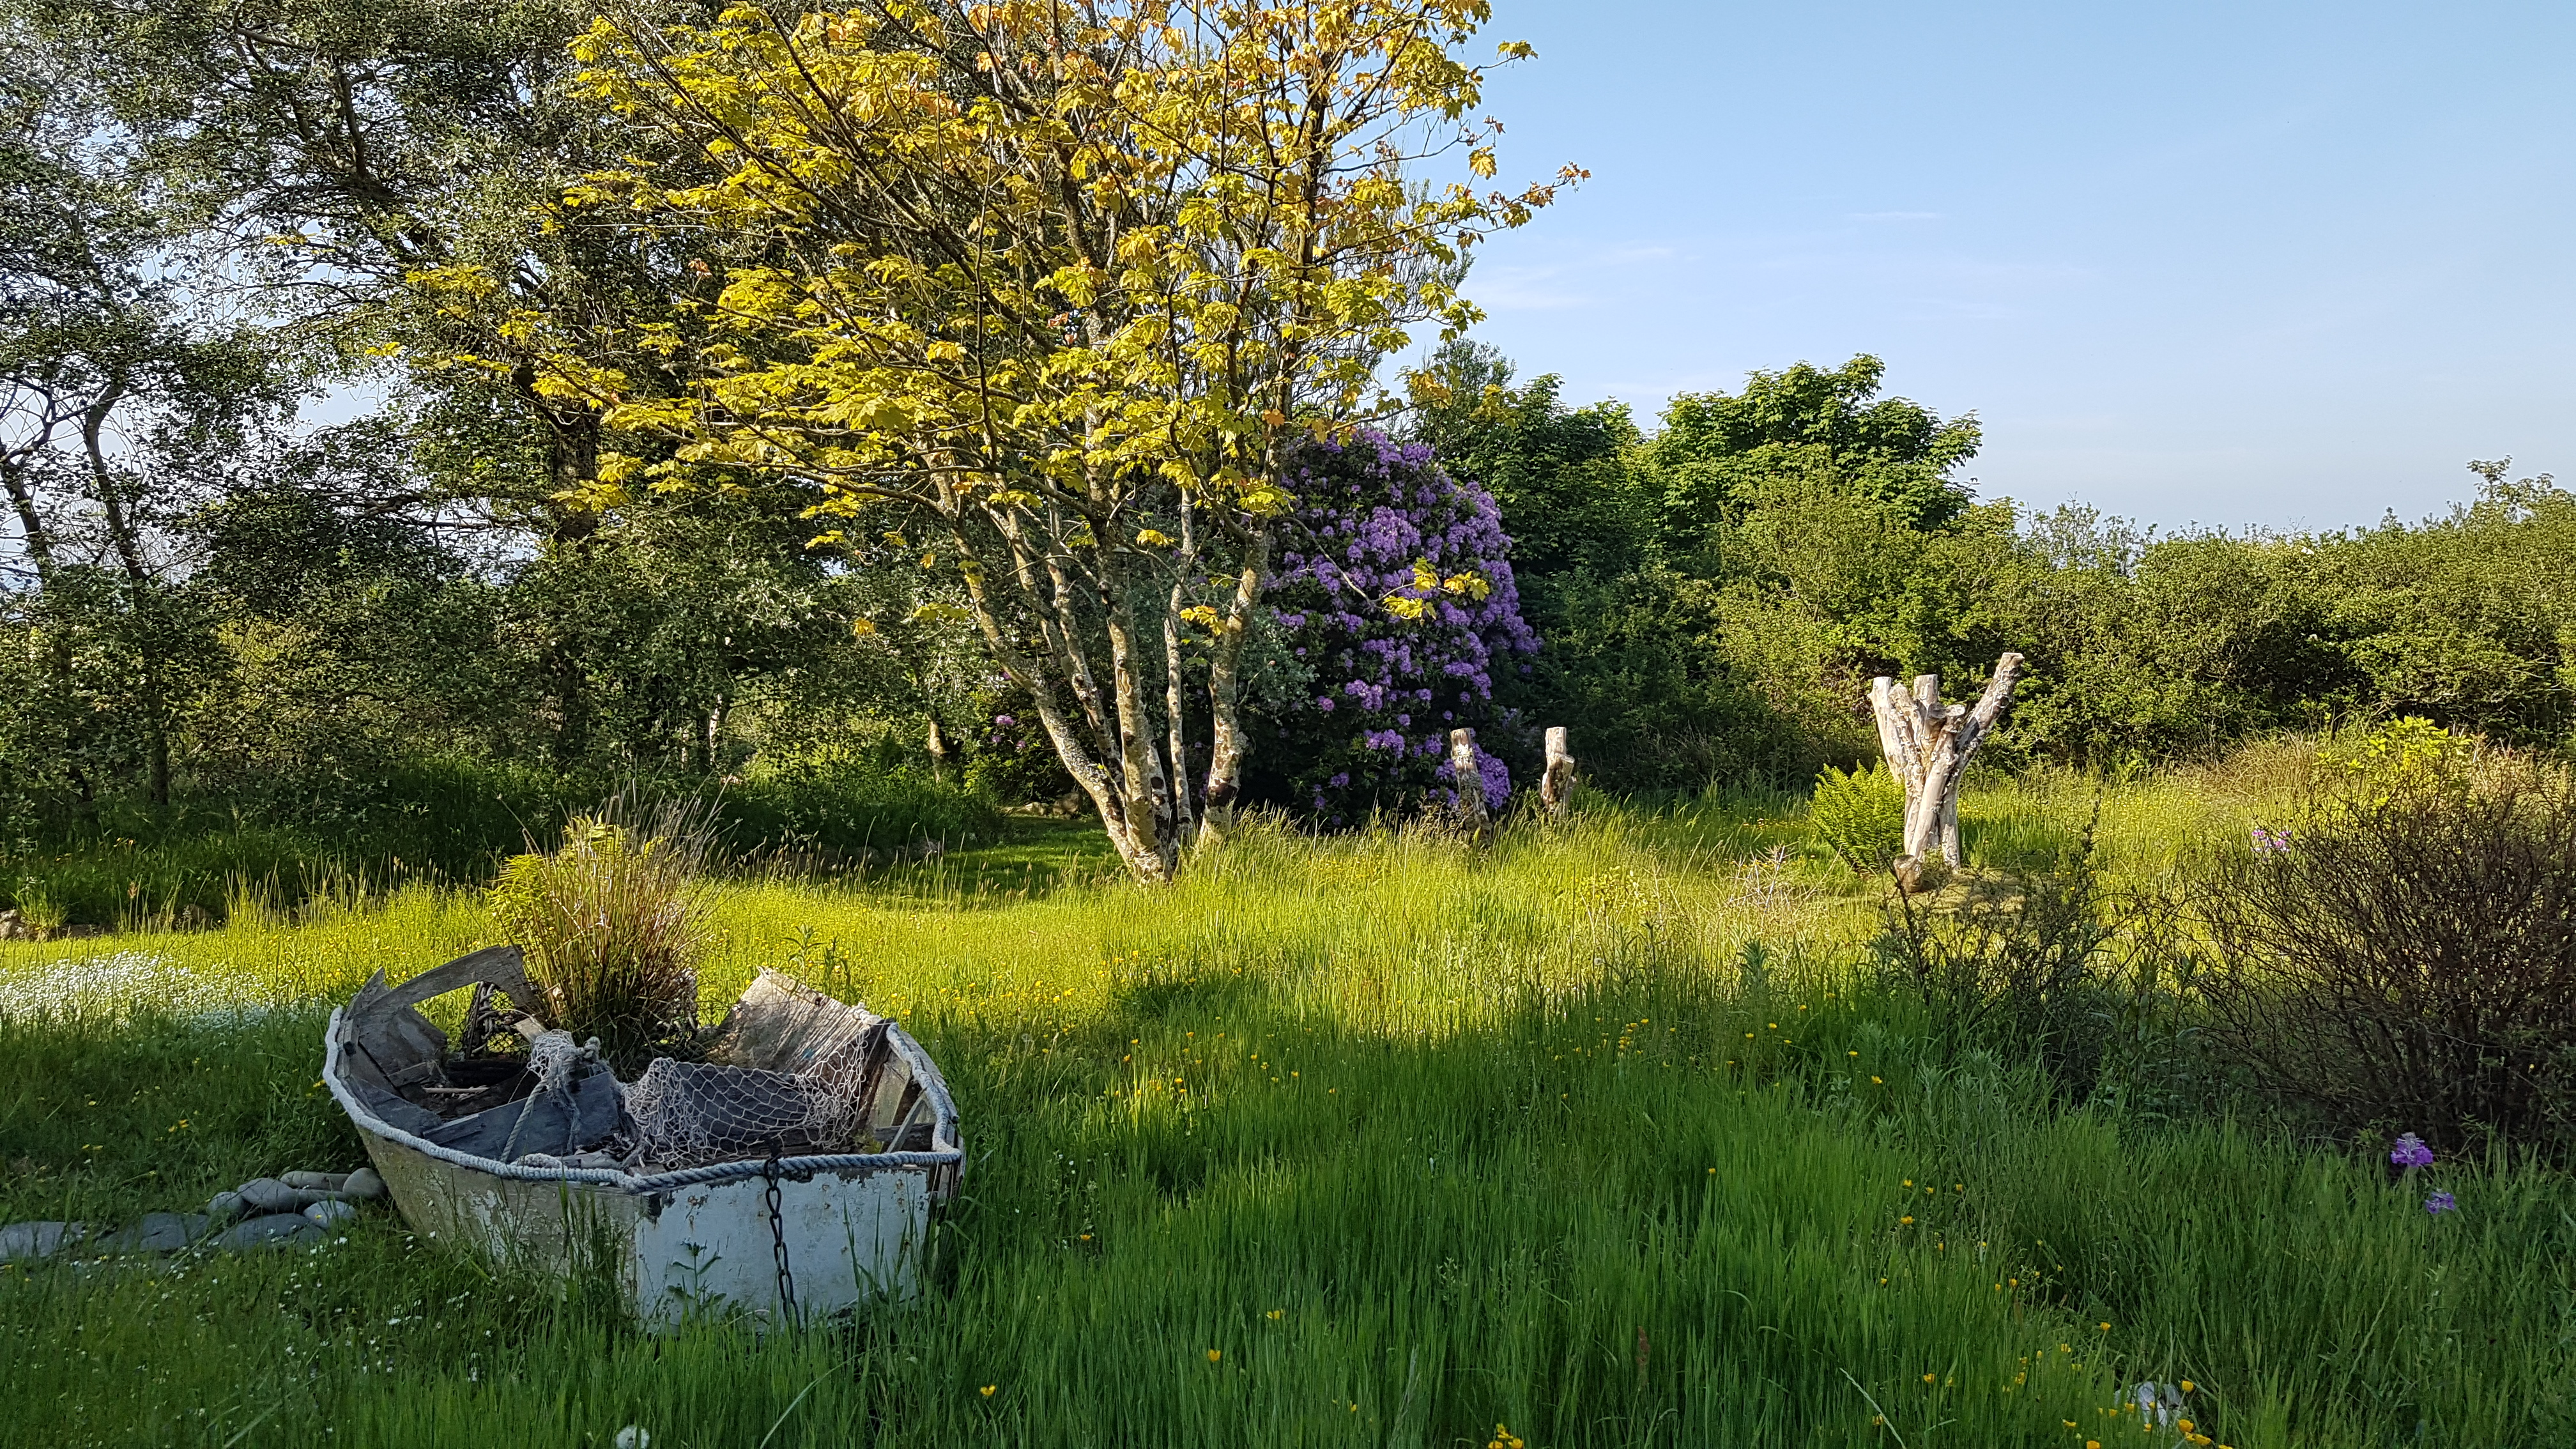 Yr Hafan landscaped gardens and beautiful Azela in Spring